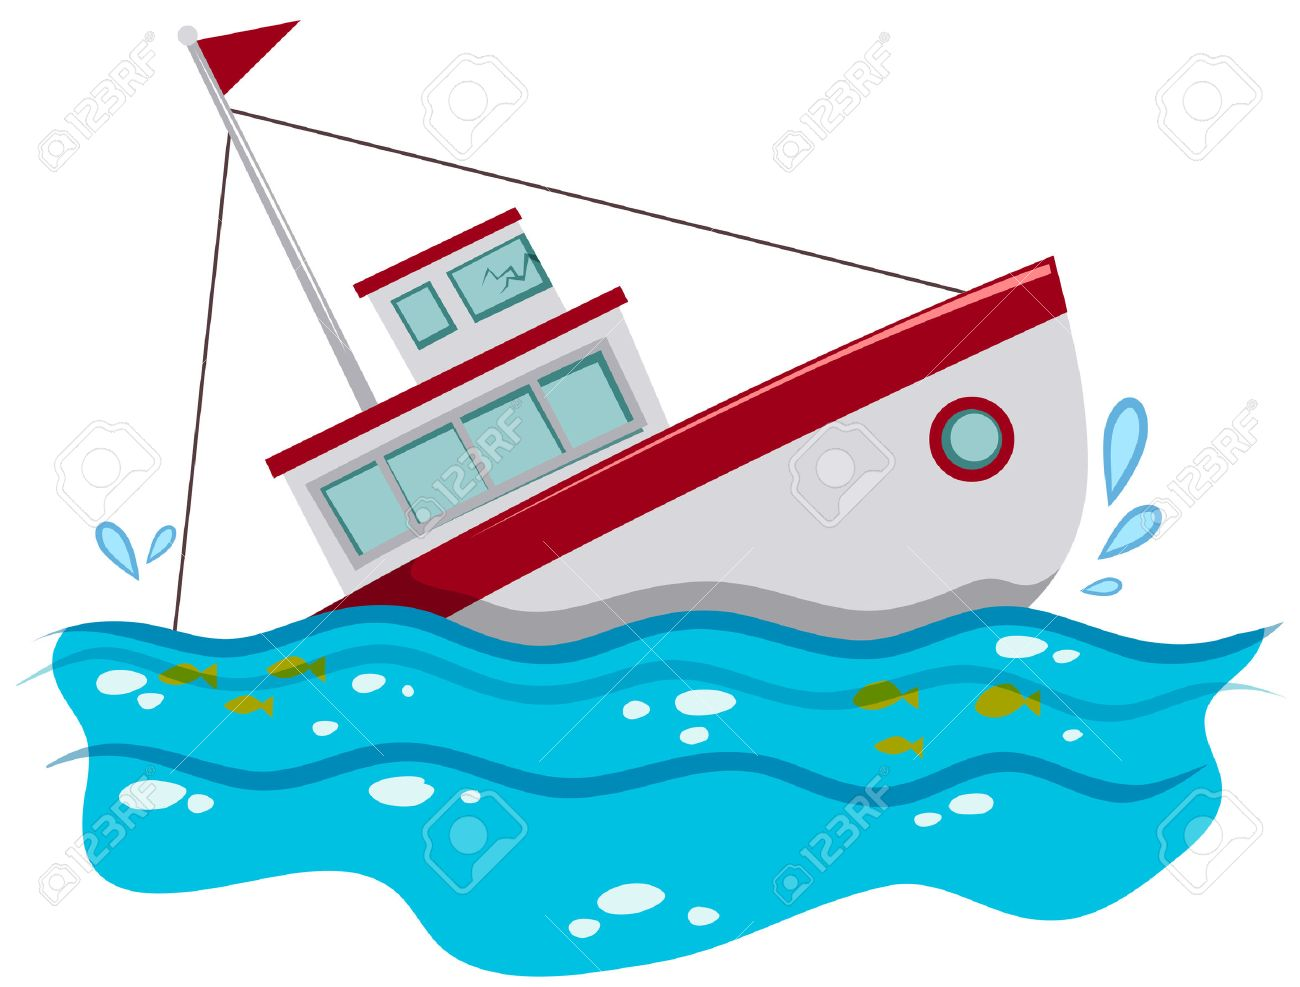 322 sinking ship stock vector illustration and royalty free sinking rh 123rf com